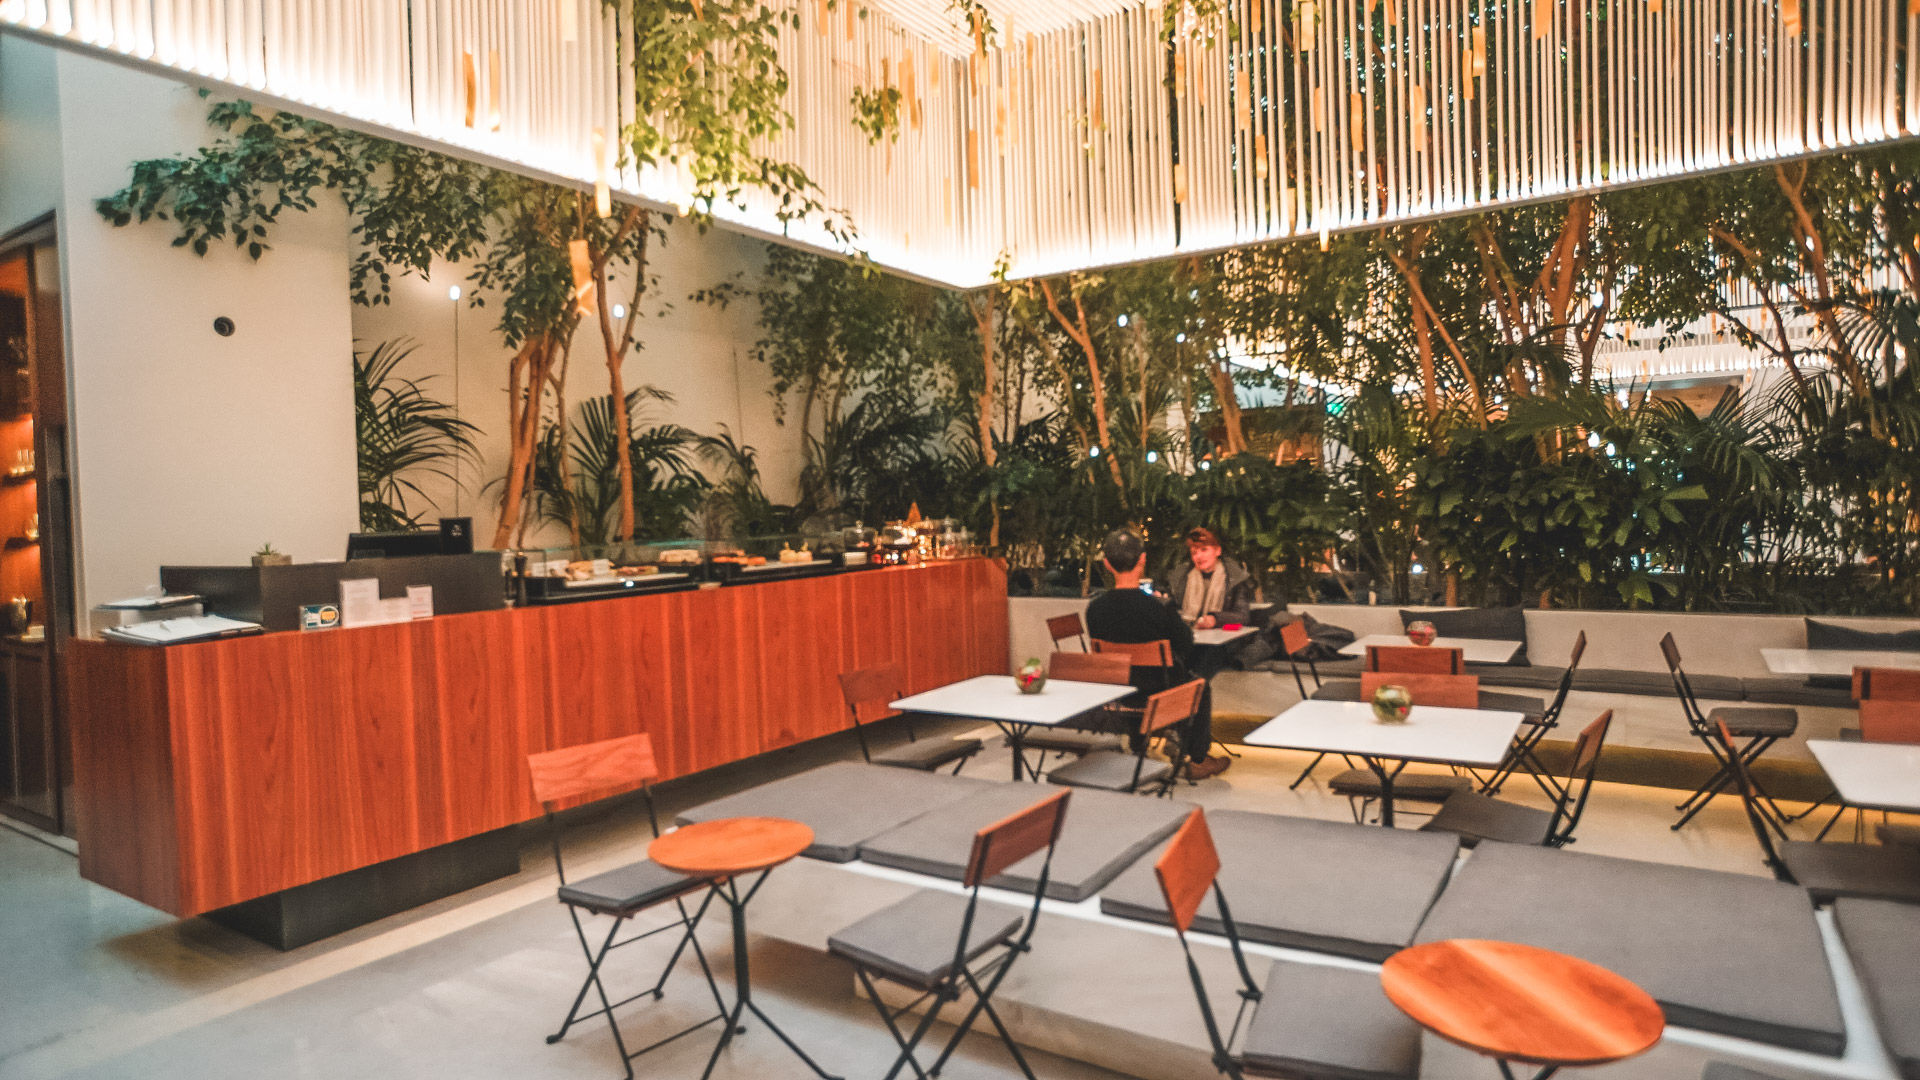 The museum has an excellent cafe that has been designed to be part of the experience, with uplifting lighting and a garden-like feel